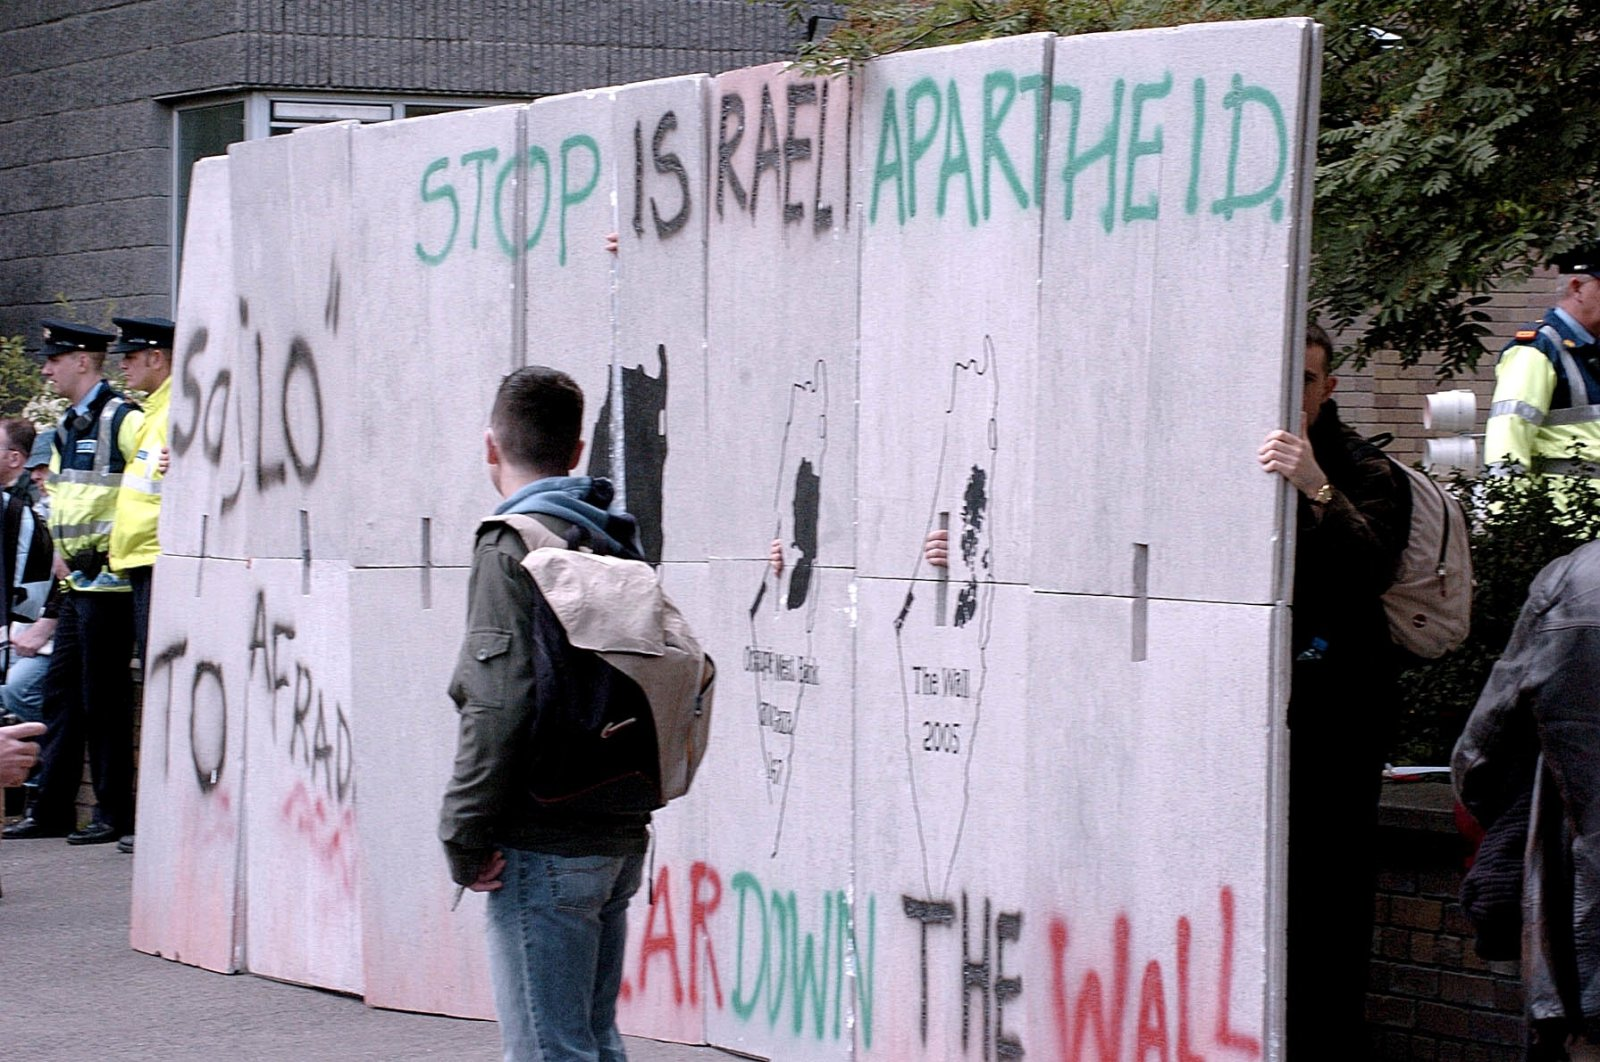 Protestors place a mock-up of the separation barrier between Israel and the occupied territories, during a demonstration outside the Israeli Embassy before the start of the World Cup qualifying soccer match between Israel and the Republic of Ireland, in Dublin, Ireland, June 4, 2005. (AP Photo)